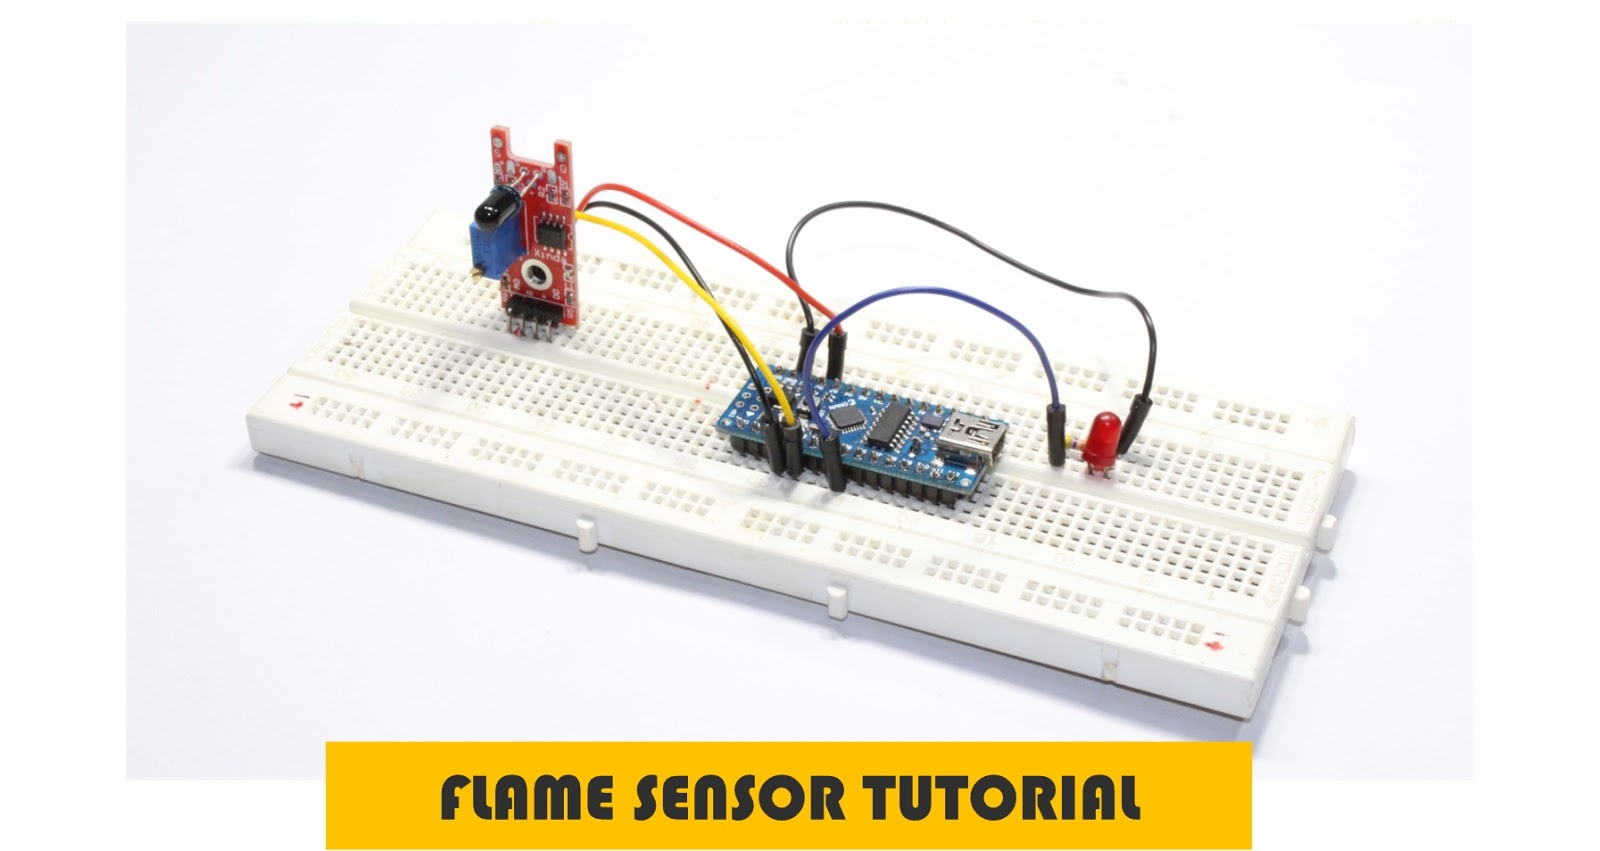 Robotech Maker How To Use Flame Sensor Simple Tutorial Building A Circuit On Breadboard For Beginners In Electronics